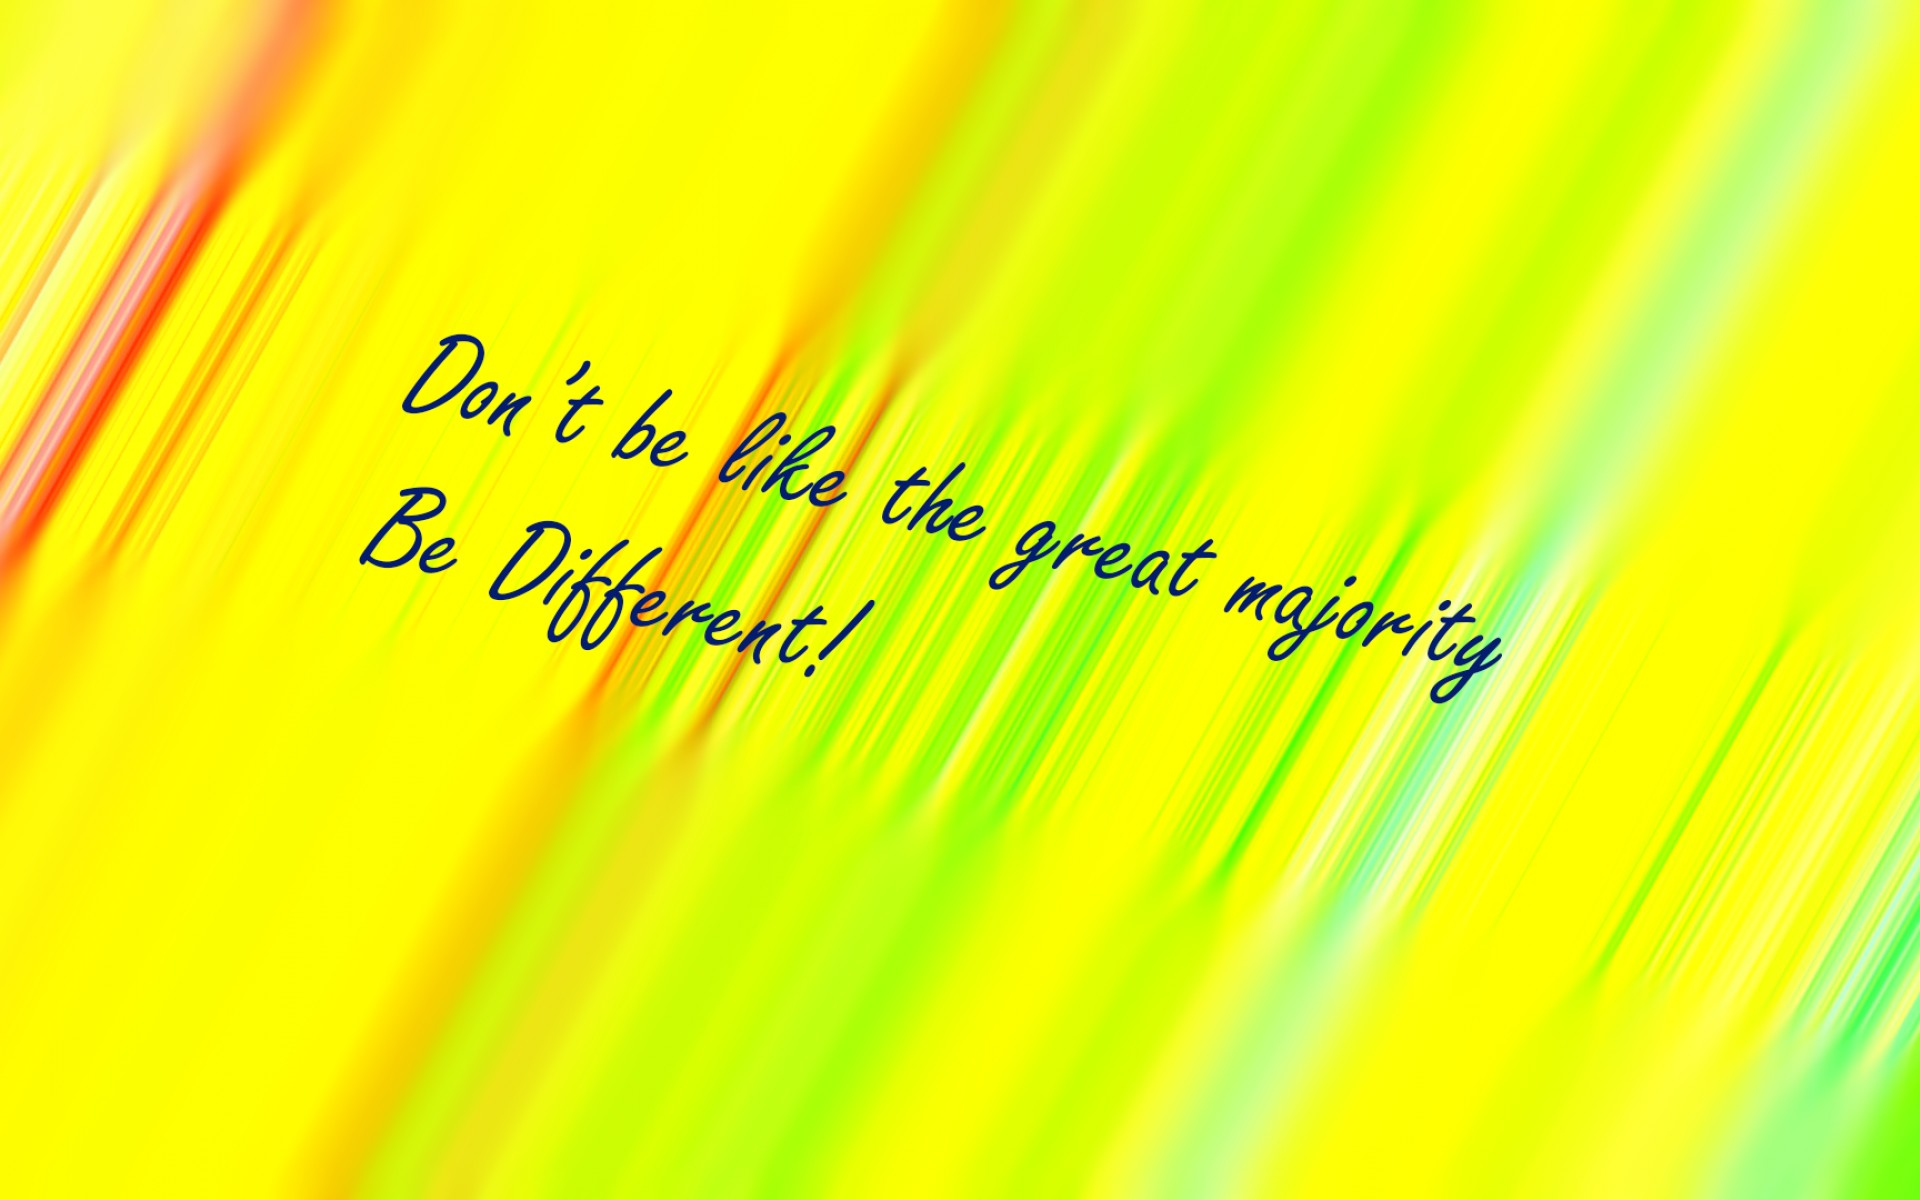 Yellow Quotes wallpaper   1221040 1920x1200